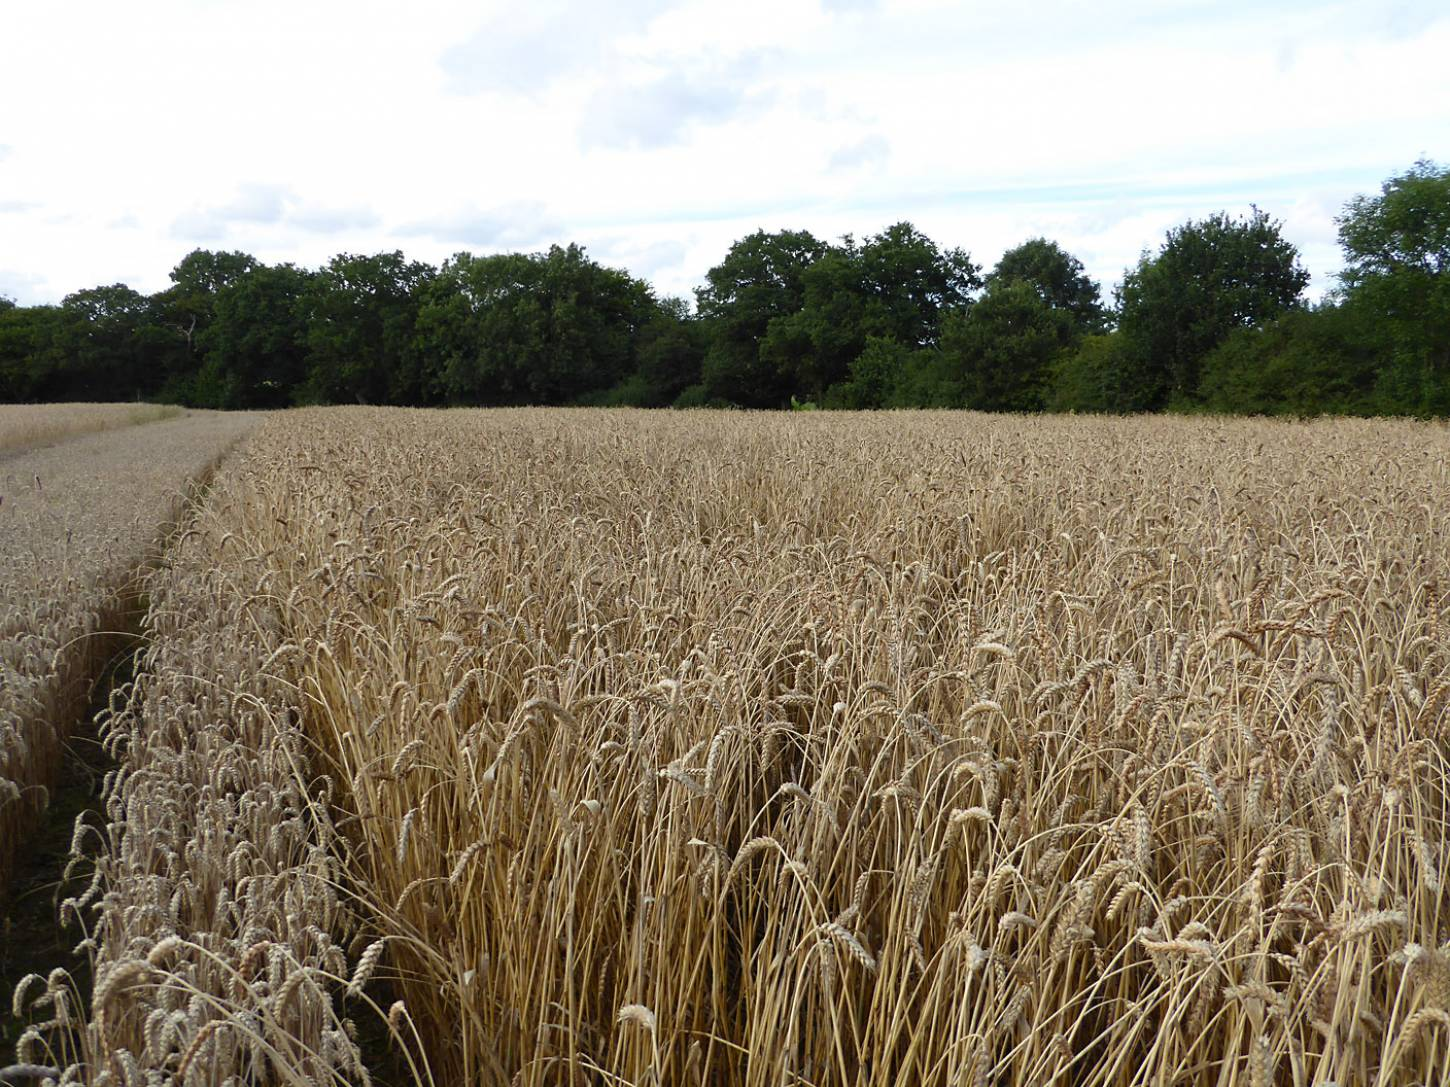 Ble de Flandre right, strip of modern Nelson wheat to left, farm review pre-harvest '17 - 6:21pm&nbsp;1<sup>st</sup>&nbsp;Aug.&nbsp;'17  <a href='http://maps.google.com/?t=h&q=51.208278,-0.084950&z=18&output=embed' target=_blank><img src='http://www.brockwell-bake.org.uk/img/marker.png' style='border:none;vertical-align:top' height=16px></a>